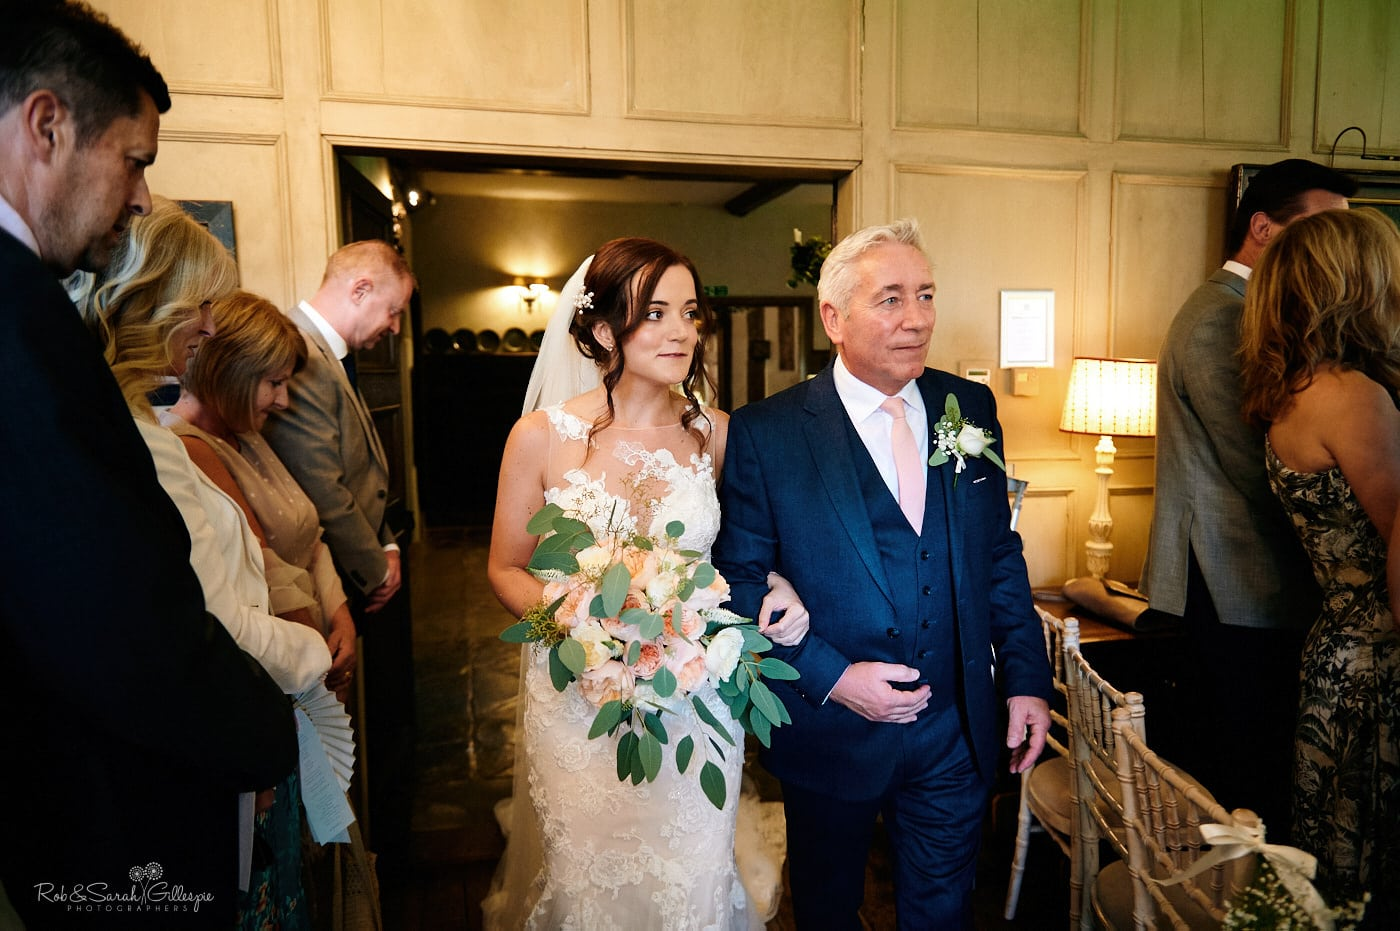 Bride and father enter wedding ceremony at Gorcott Hall